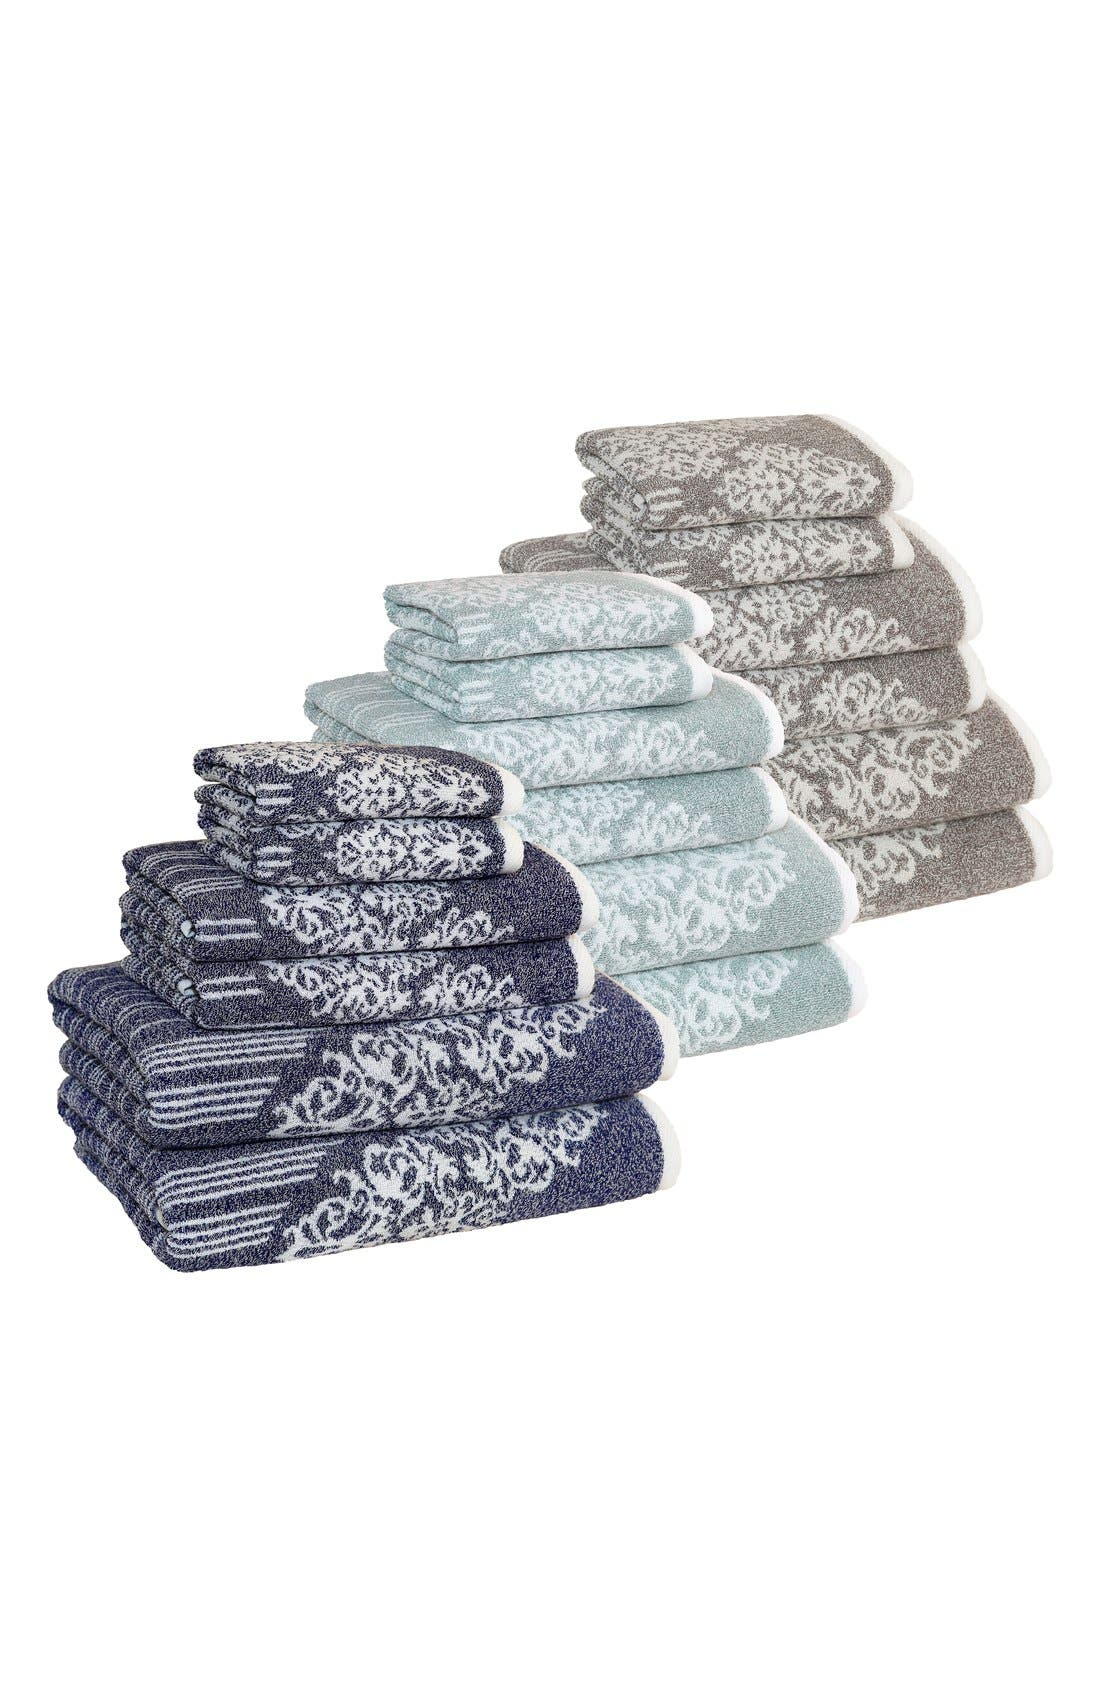 Linum 'Gioia' Bath Towels, Hand Towels & Washcloths,                             Alternate thumbnail 4, color,                             440